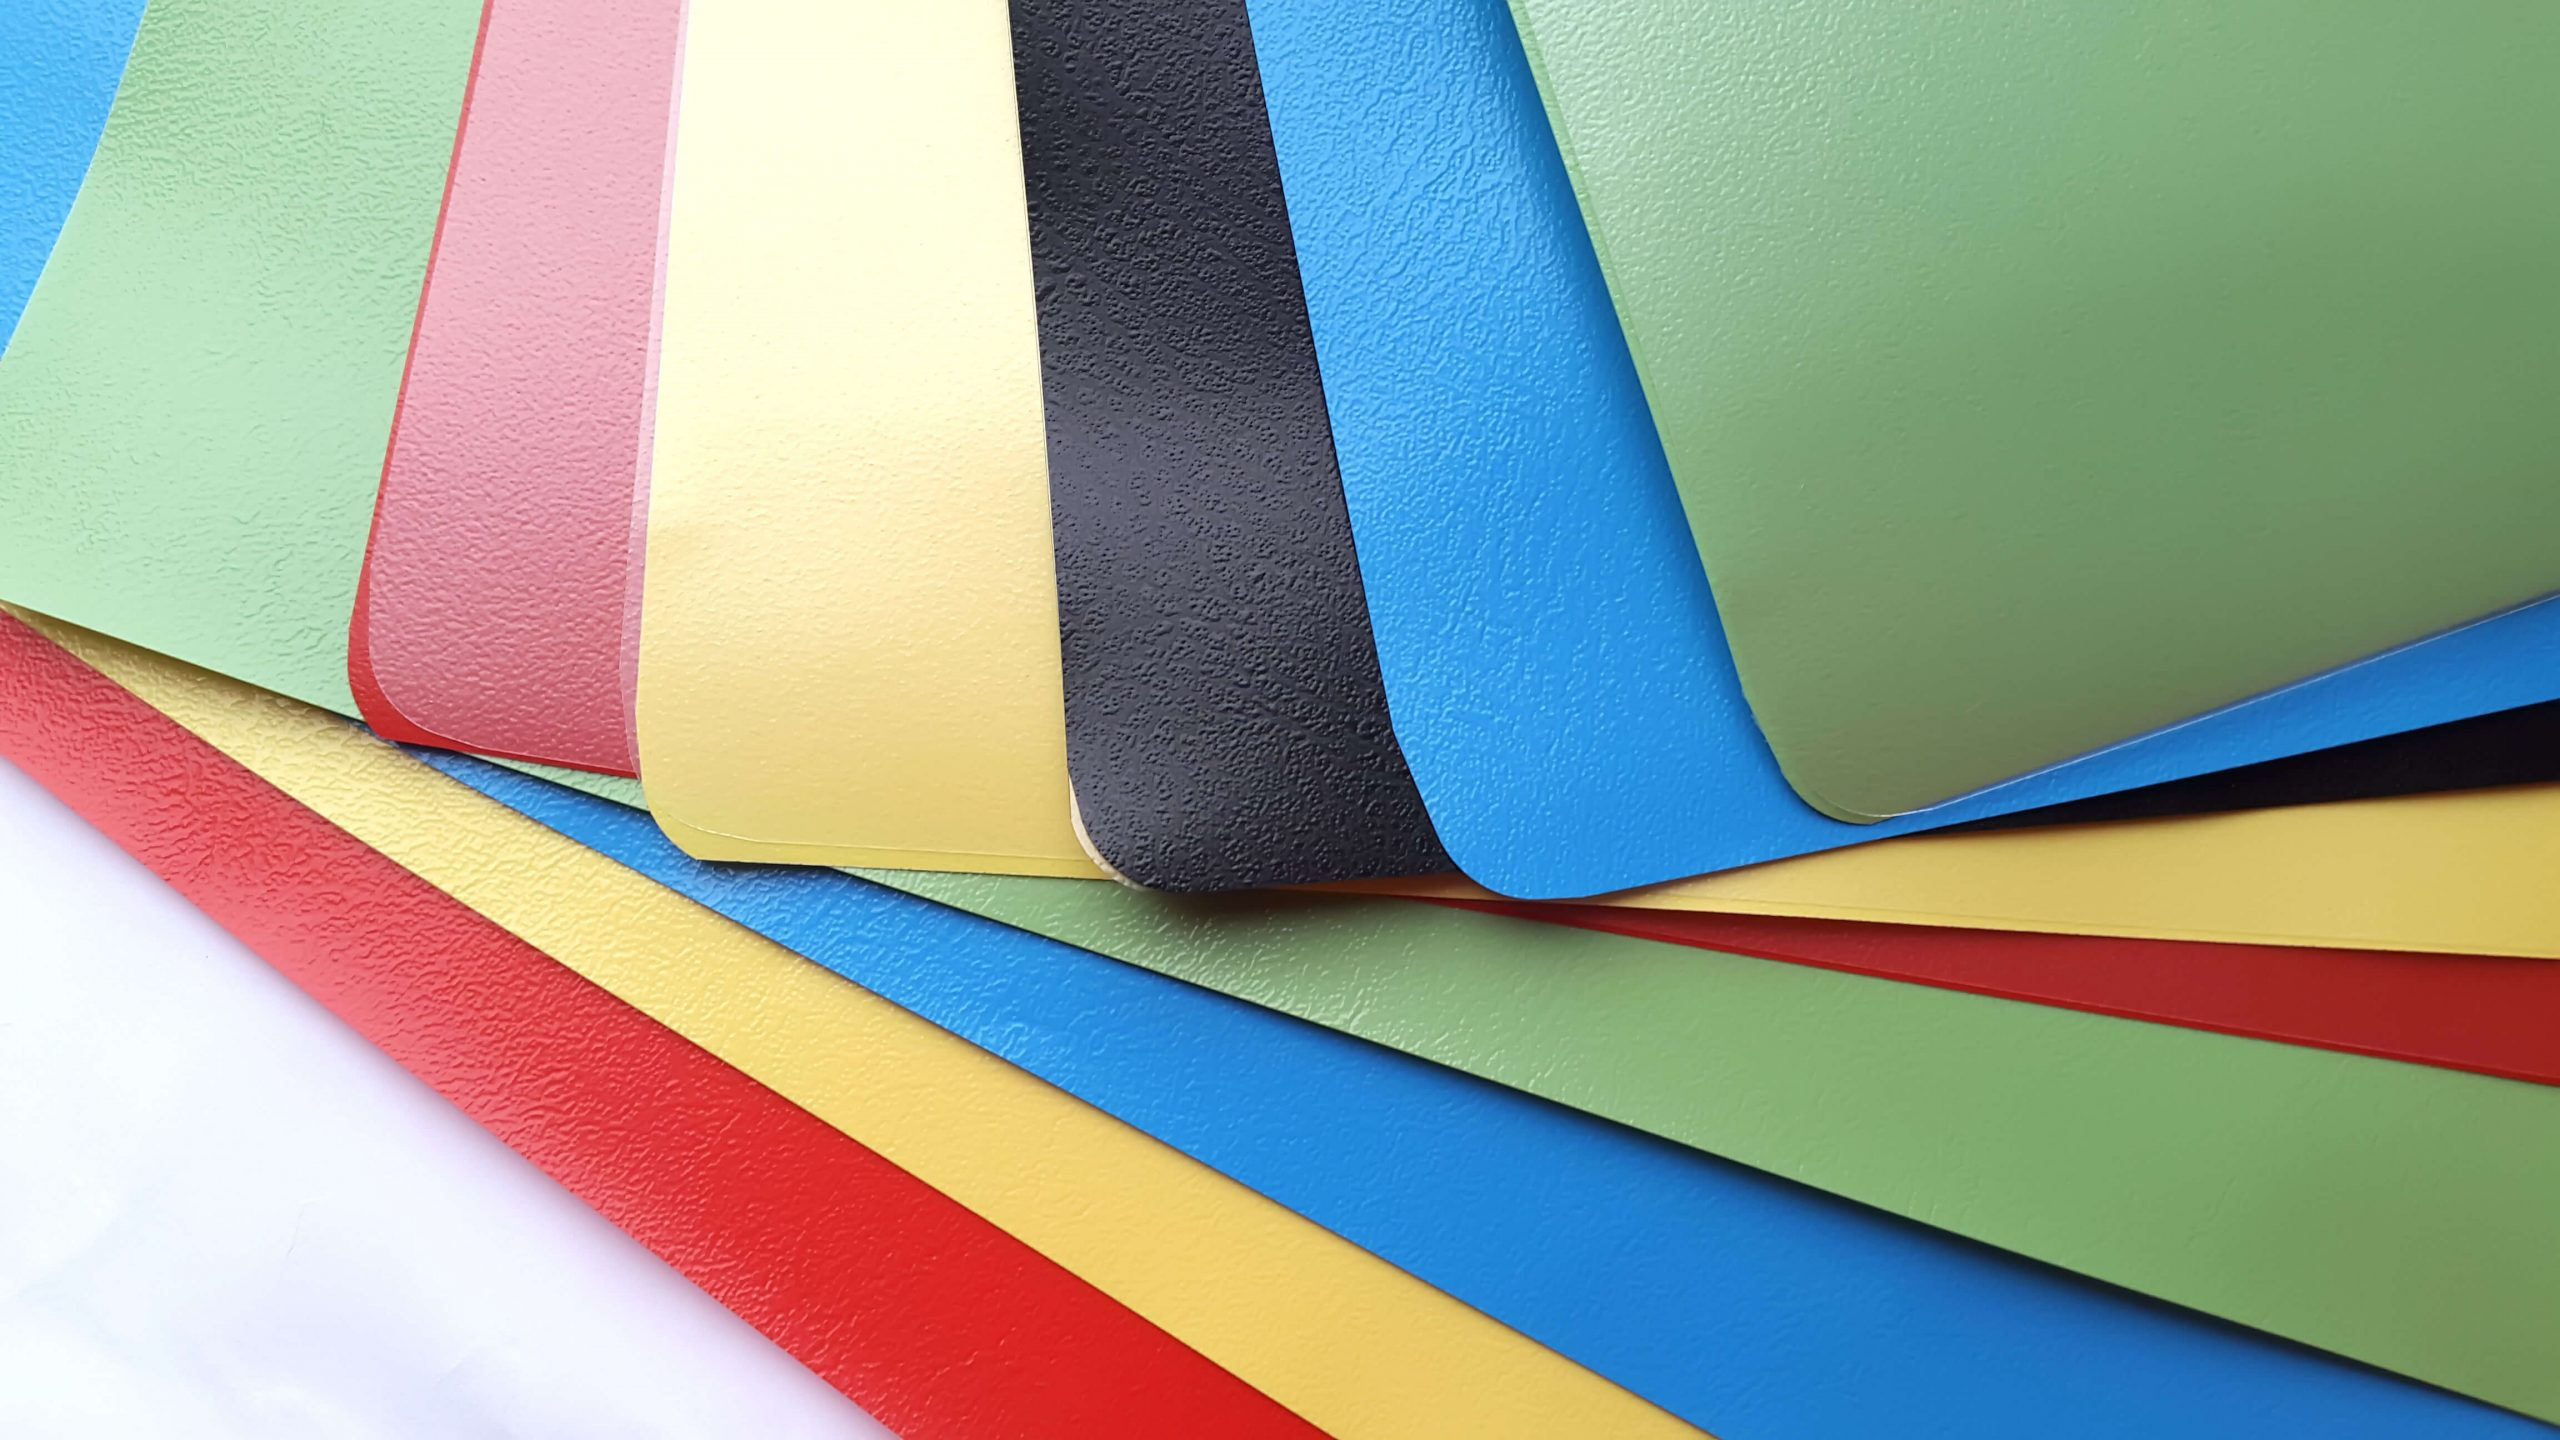 ABS Plastic - Different textures, deep grain, smooth and embossed finishes